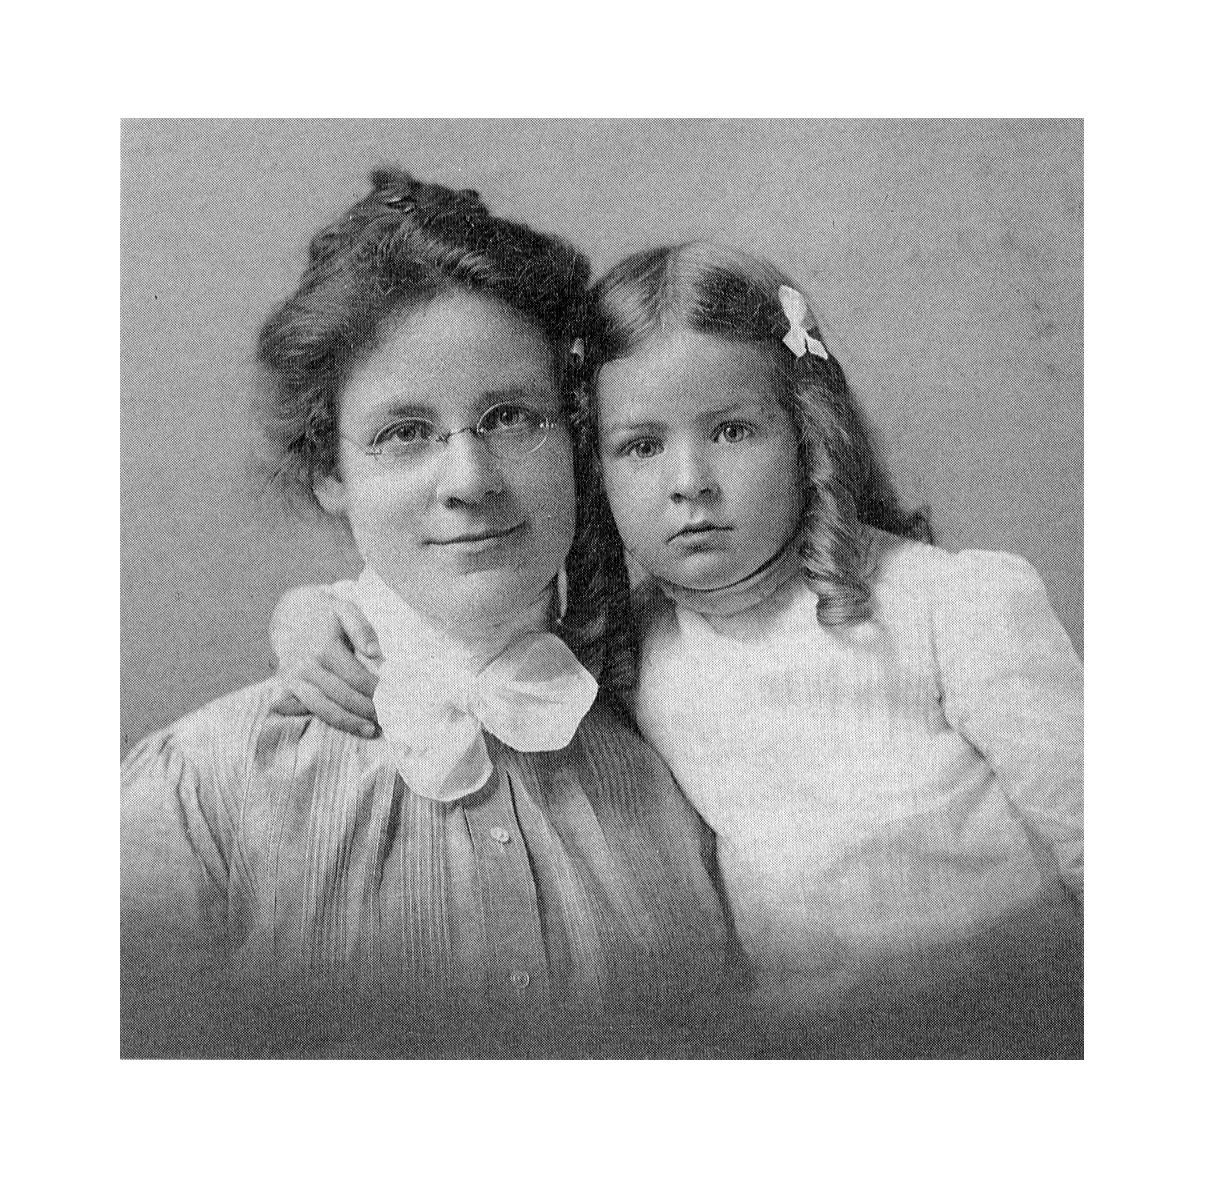 Katharine Cook Briggs and her daughter Isabel Briggs Myers. Decades after this photo was taken, they brought the Myers-Briggs